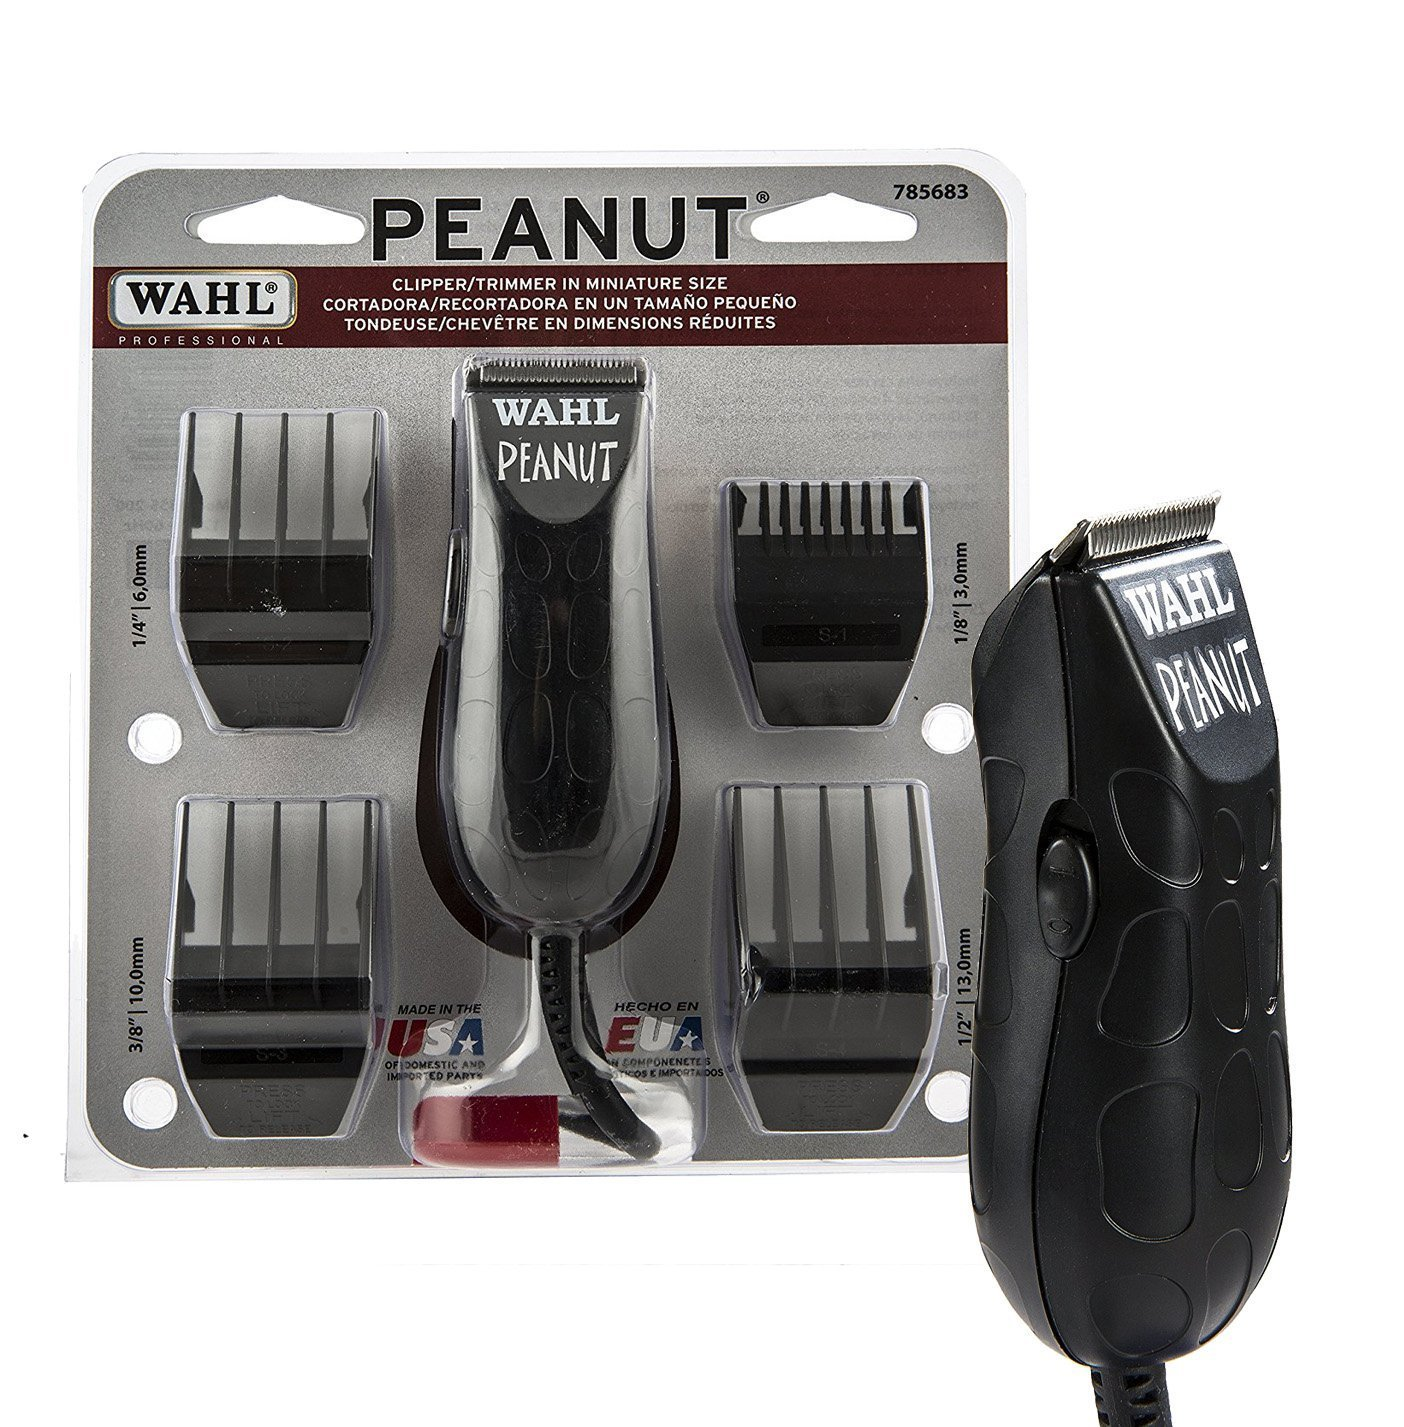 Wahl Professional Peanut Clipper/Trimmer #8655 with Travel Storage Case #90728 – Great for Barbers and Stylists by Wahl Professional (Image #2)